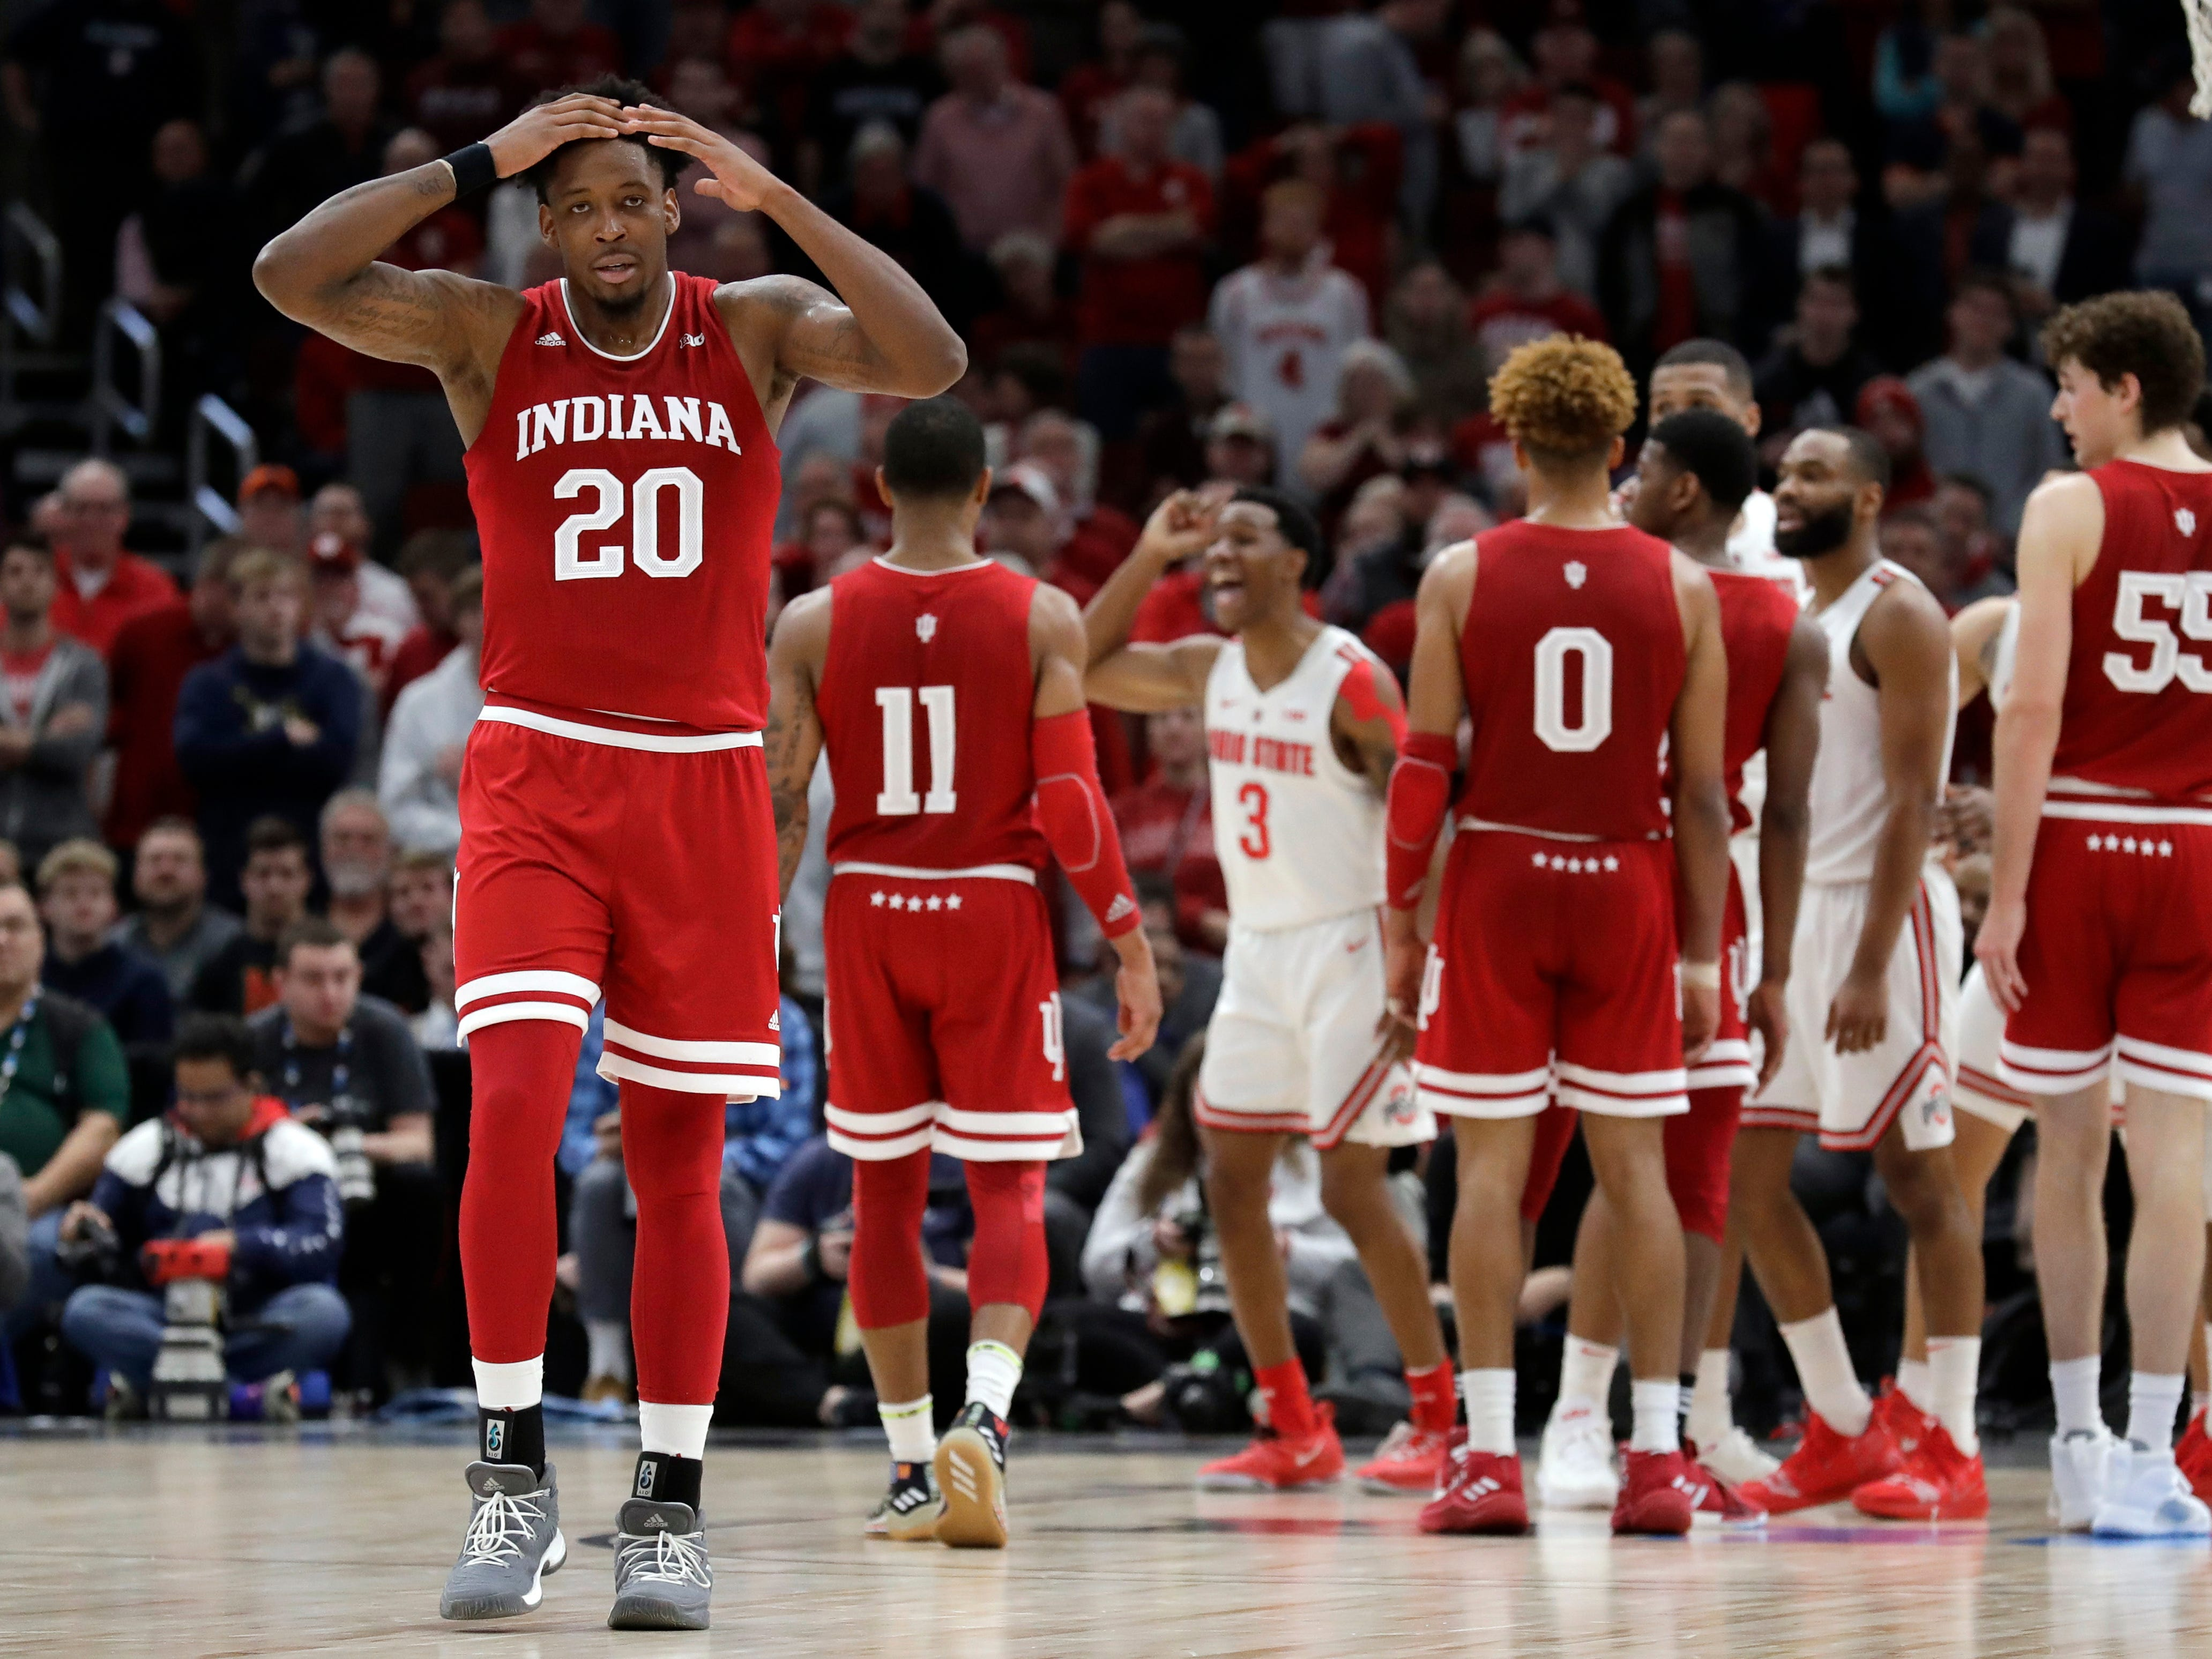 Indiana's De'Ron Davis (20) reacts to an offensive foul call during the second half against the Ohio State in the second round of the Big Ten tournament, Thursday, in Chicago. The Ohio State won 79-75.